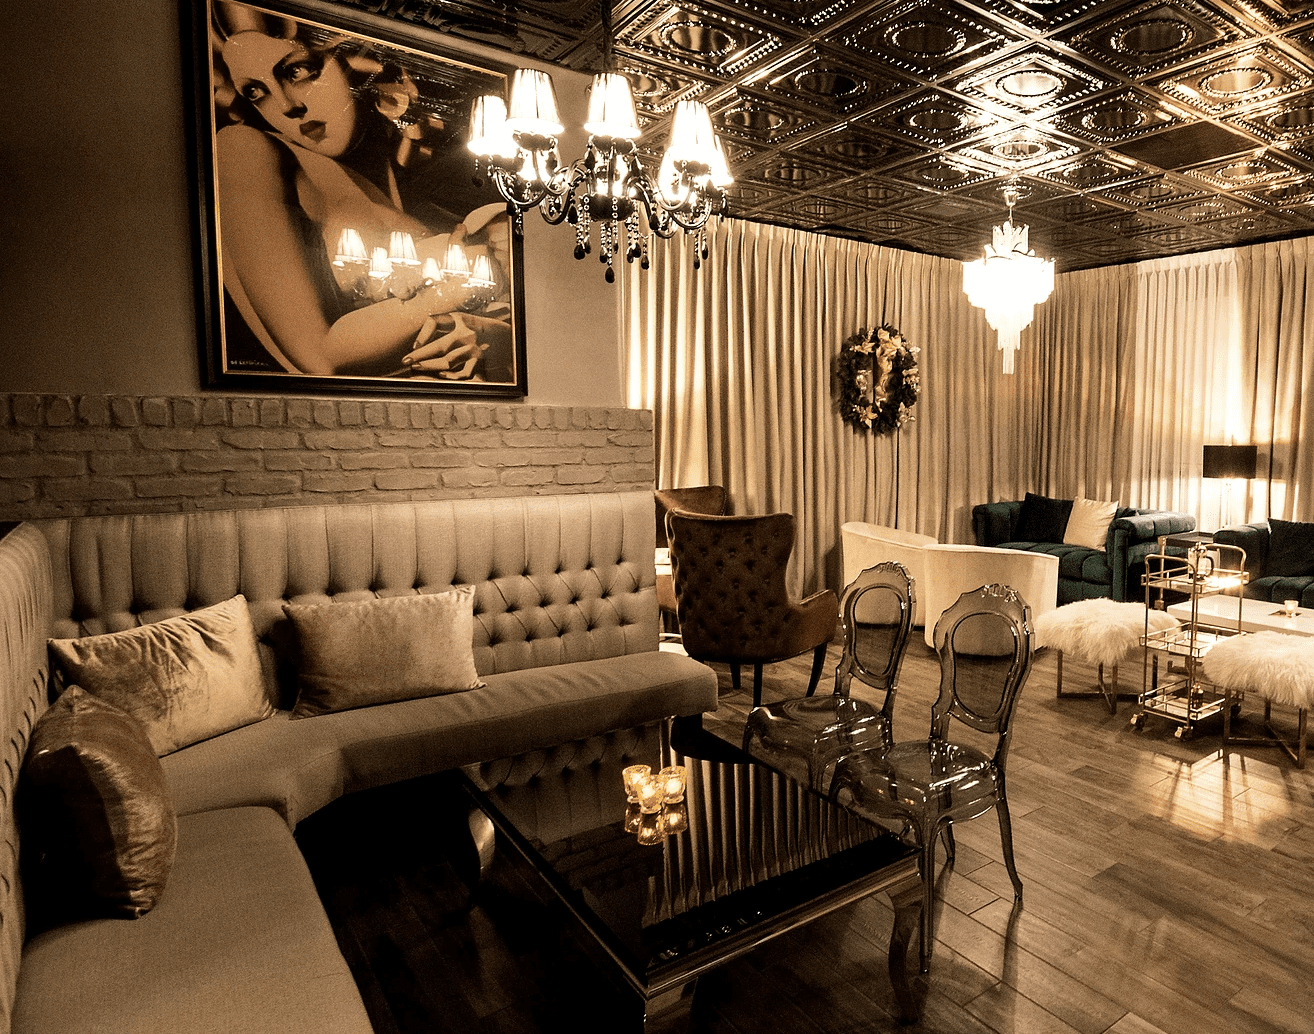 Best Cocktail Bars for Date Night in Albuquerque